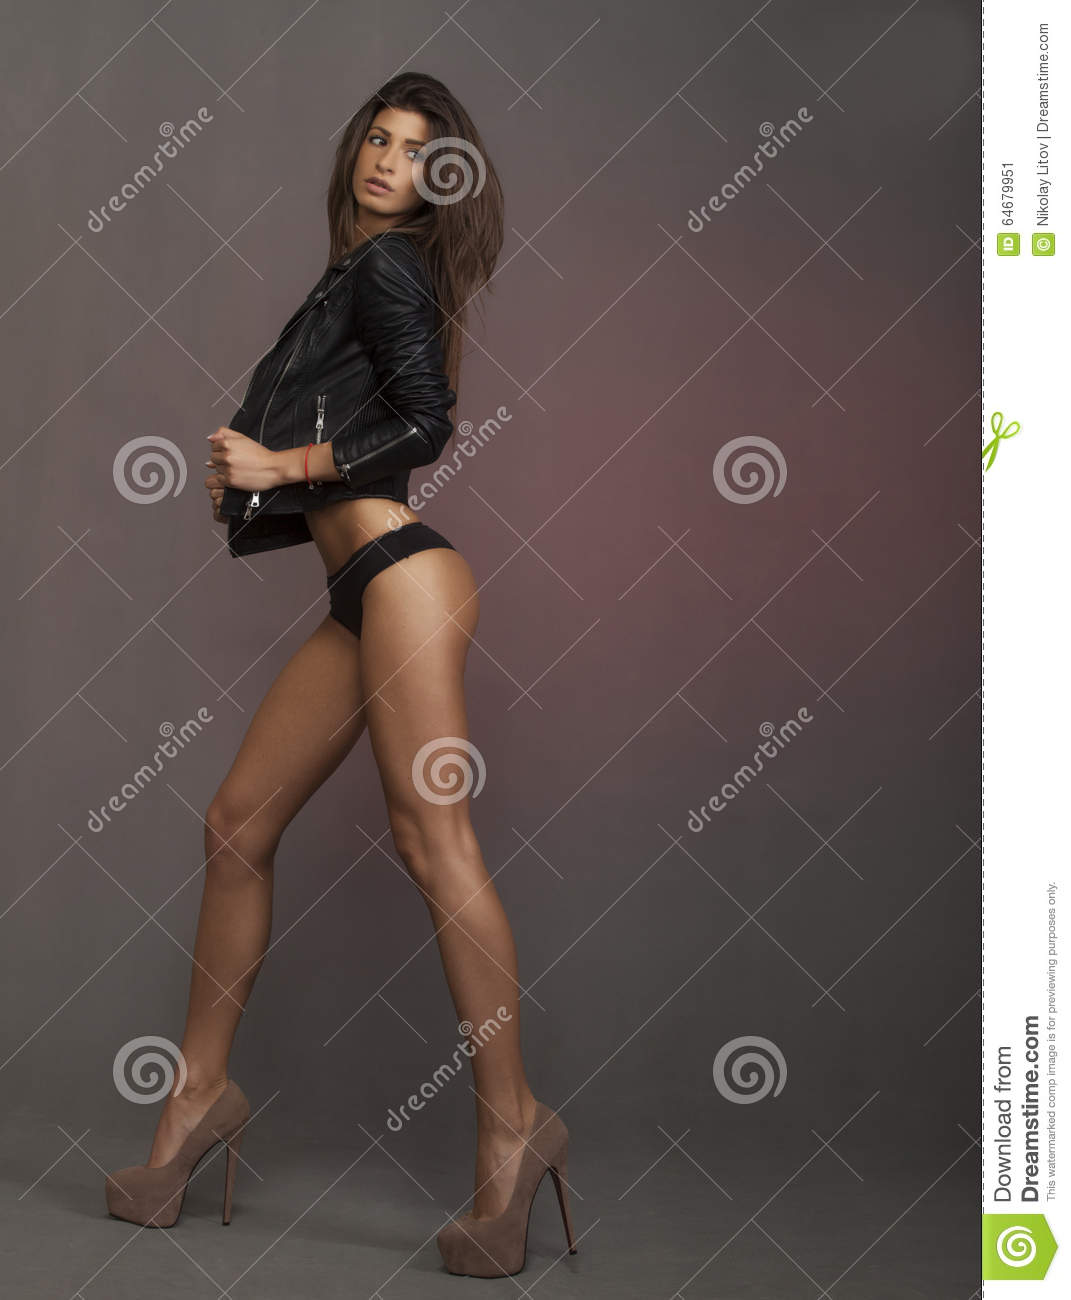 attractive naked brunette girl stock image - image of female, long